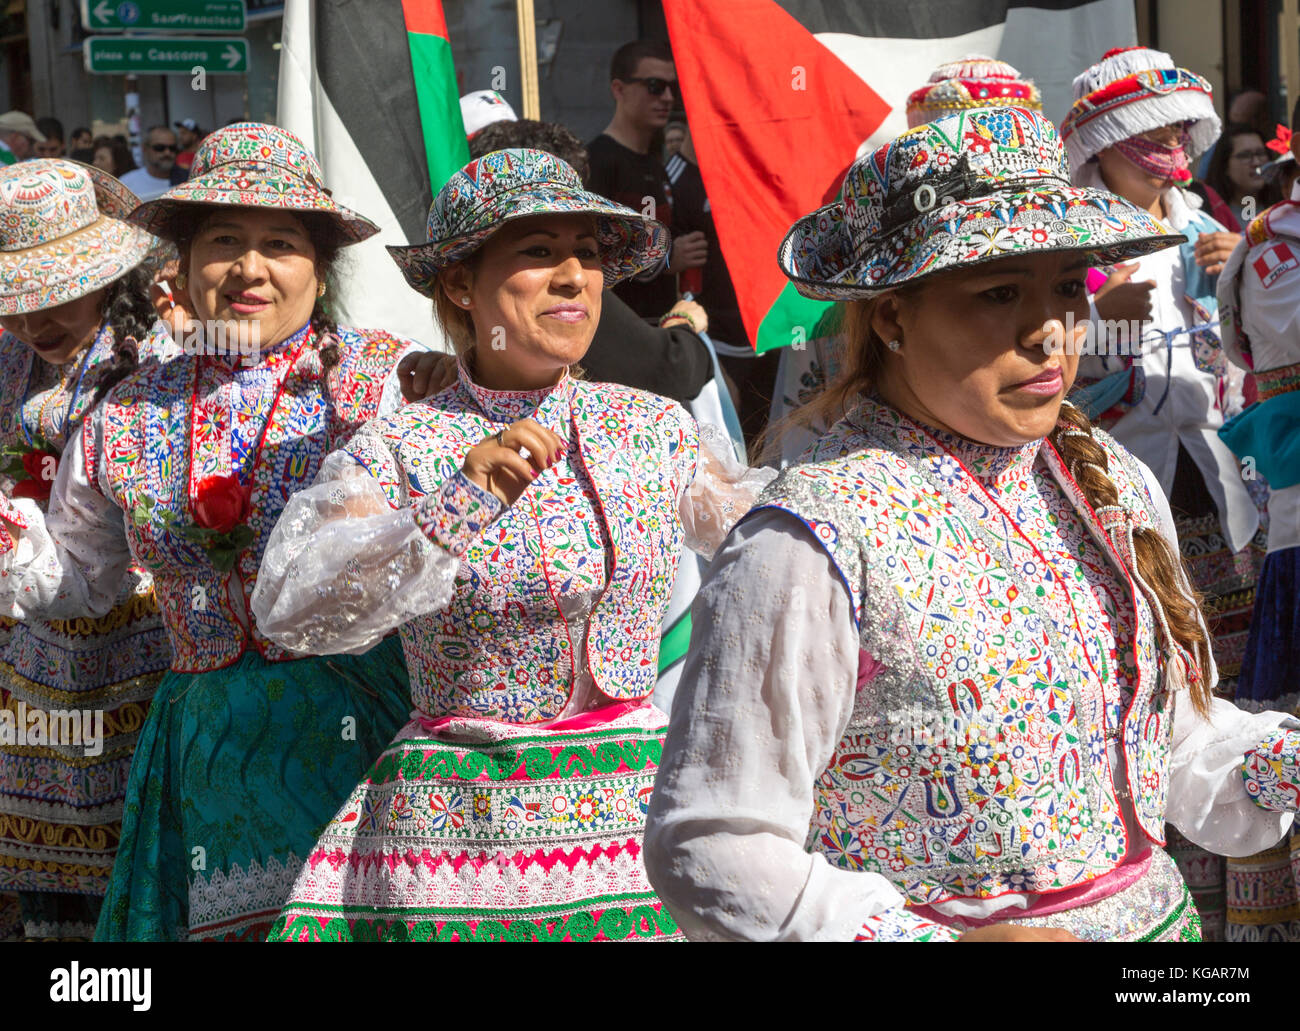 Political rally march on Columbus Day, Fiesta Nacional de España, October 12 2017, Madrid, Spain - Stock Image